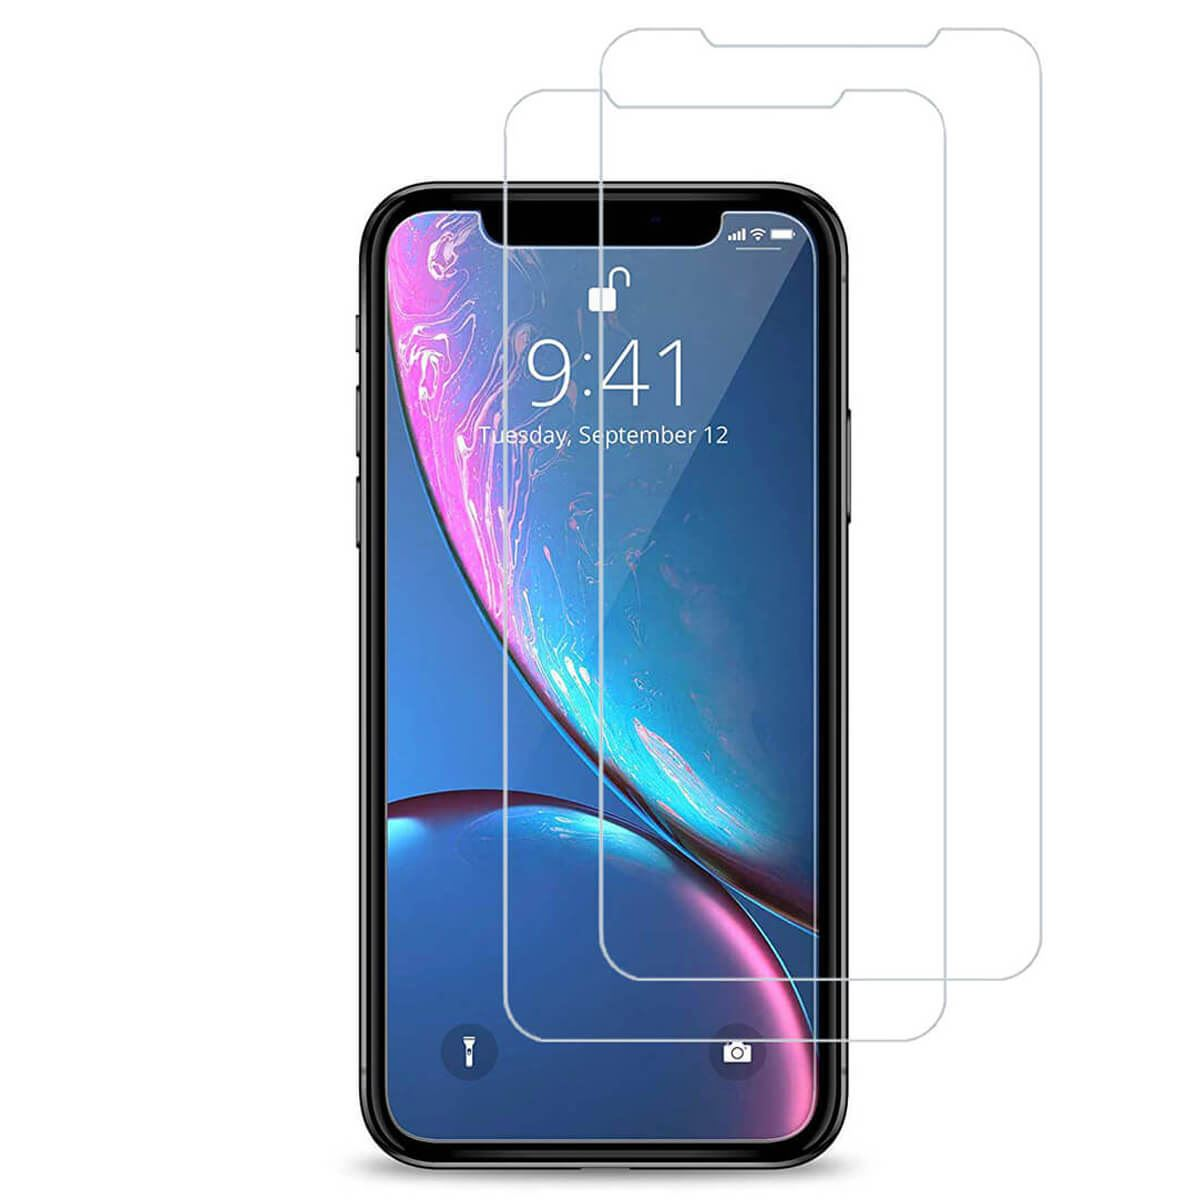 Tempered-Glass-Film-Screen-Protector-For-iPhone-12-Pro-Max-Mini-XR-XS-Max-8-7-6s thumbnail 55